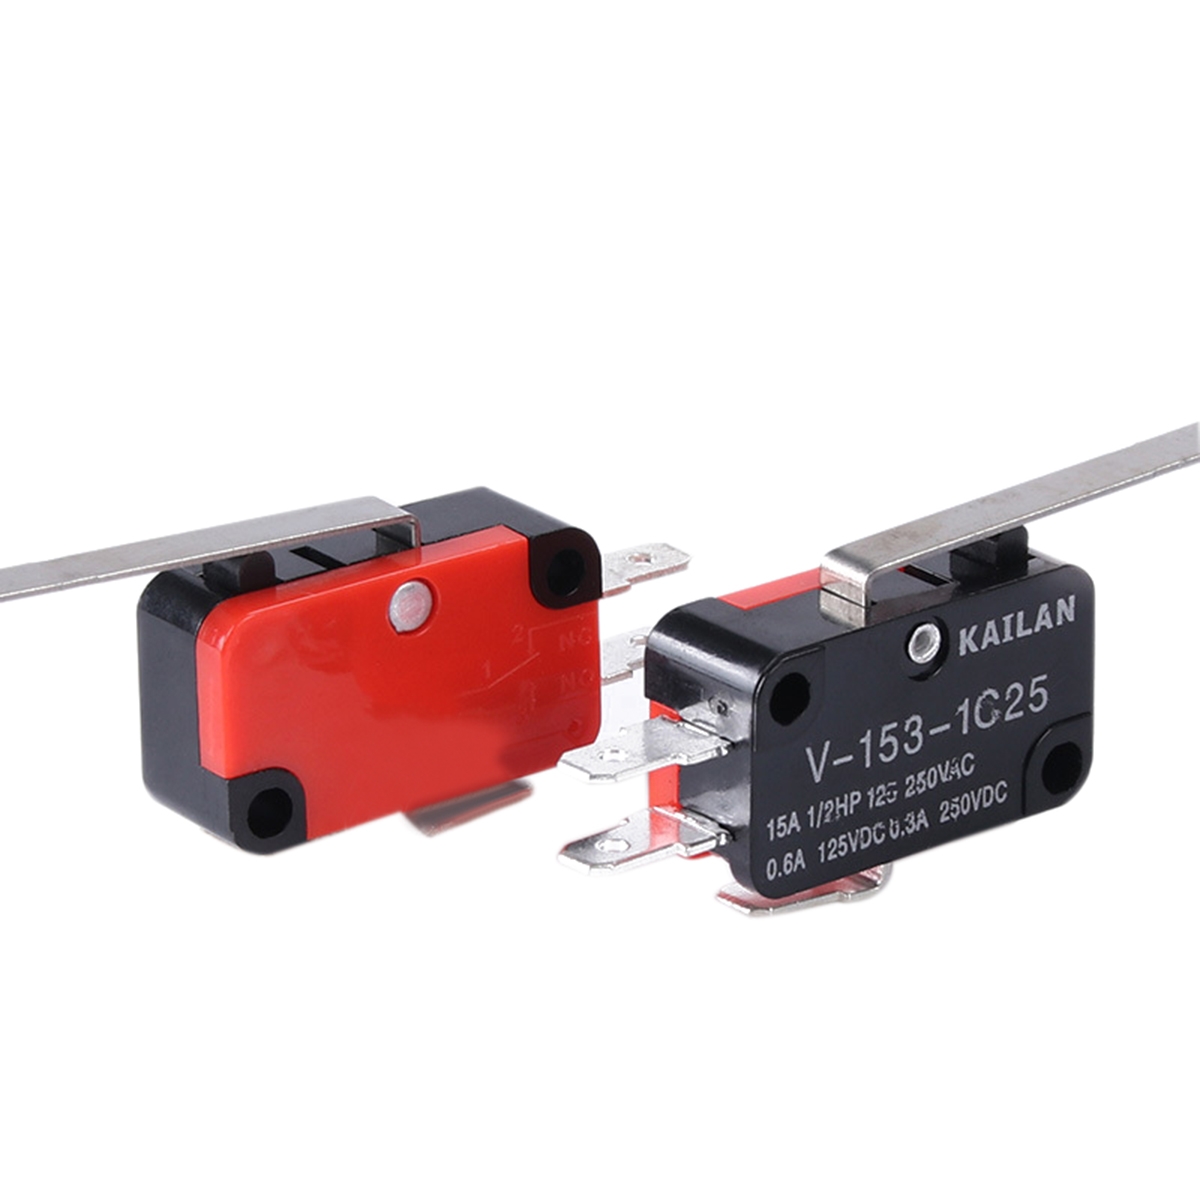 10pcs/lot Precision V-153-1C25 Limit Switch Long Straight Hinge Lever Type SPDT Micro Switch For Electronic Measuring Appliance